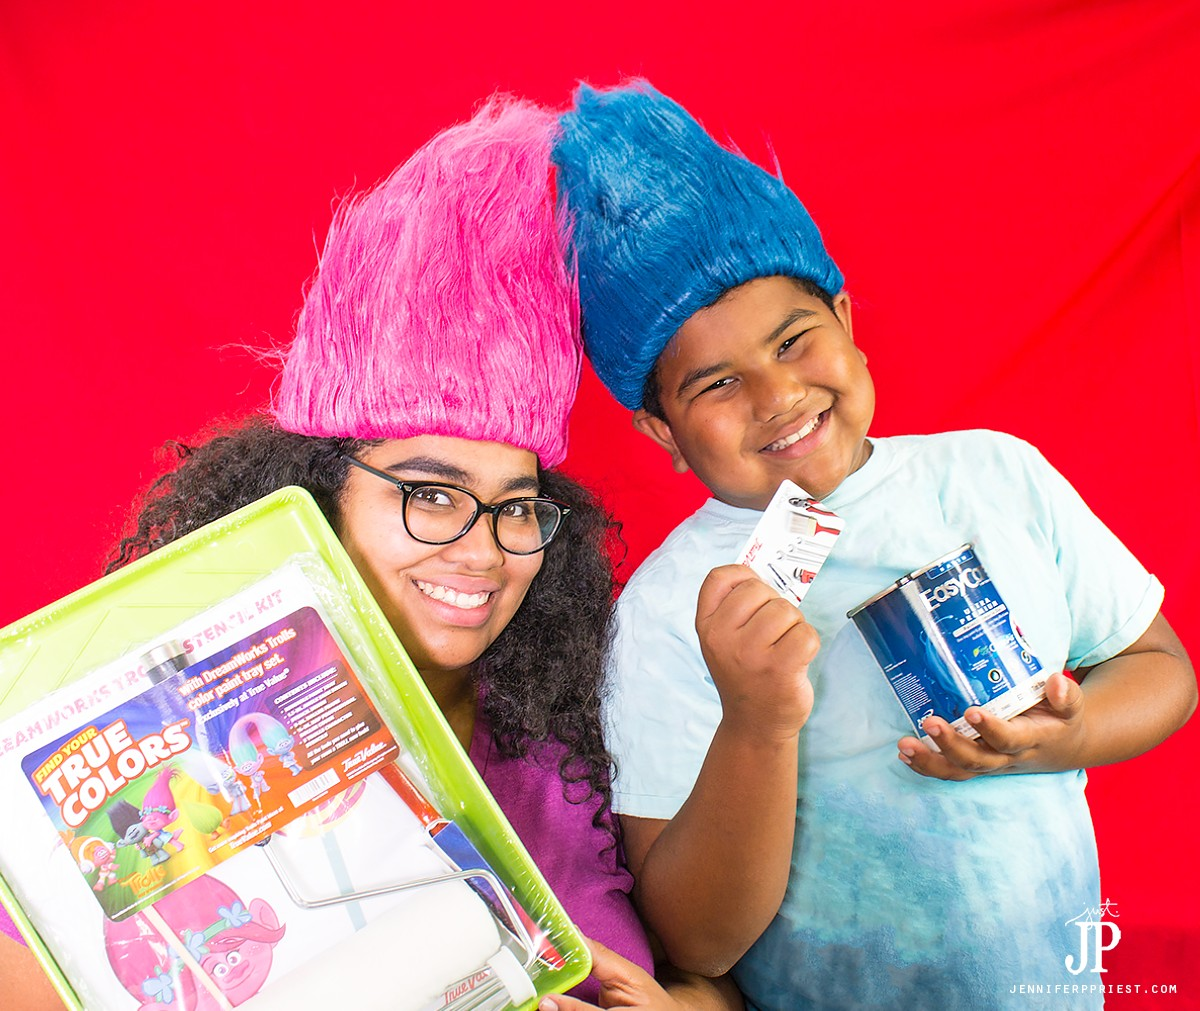 Trolls Movie Paint And Home Decor Giveaway